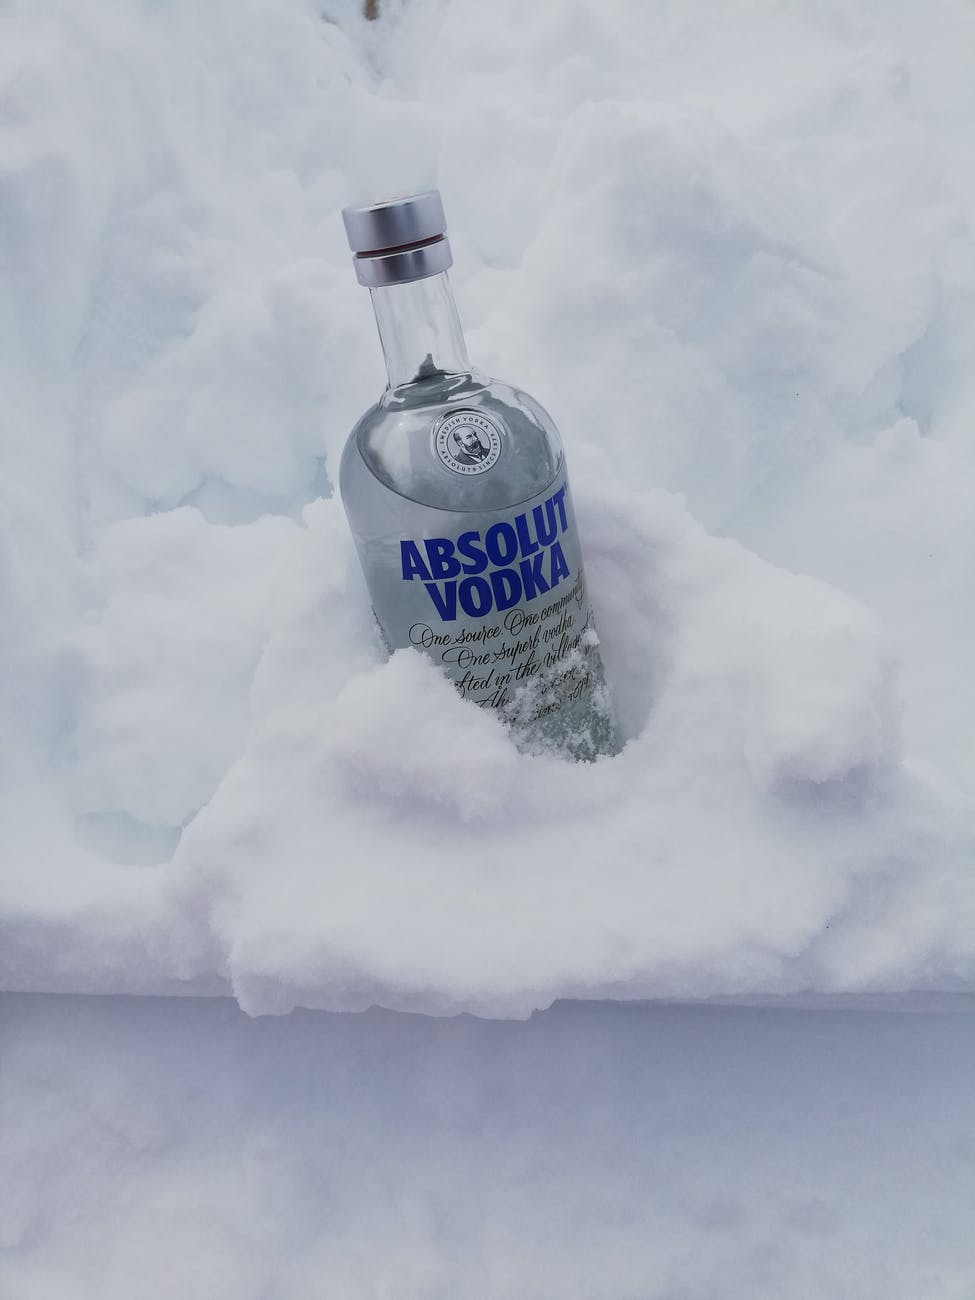 vodka bottle in the snow